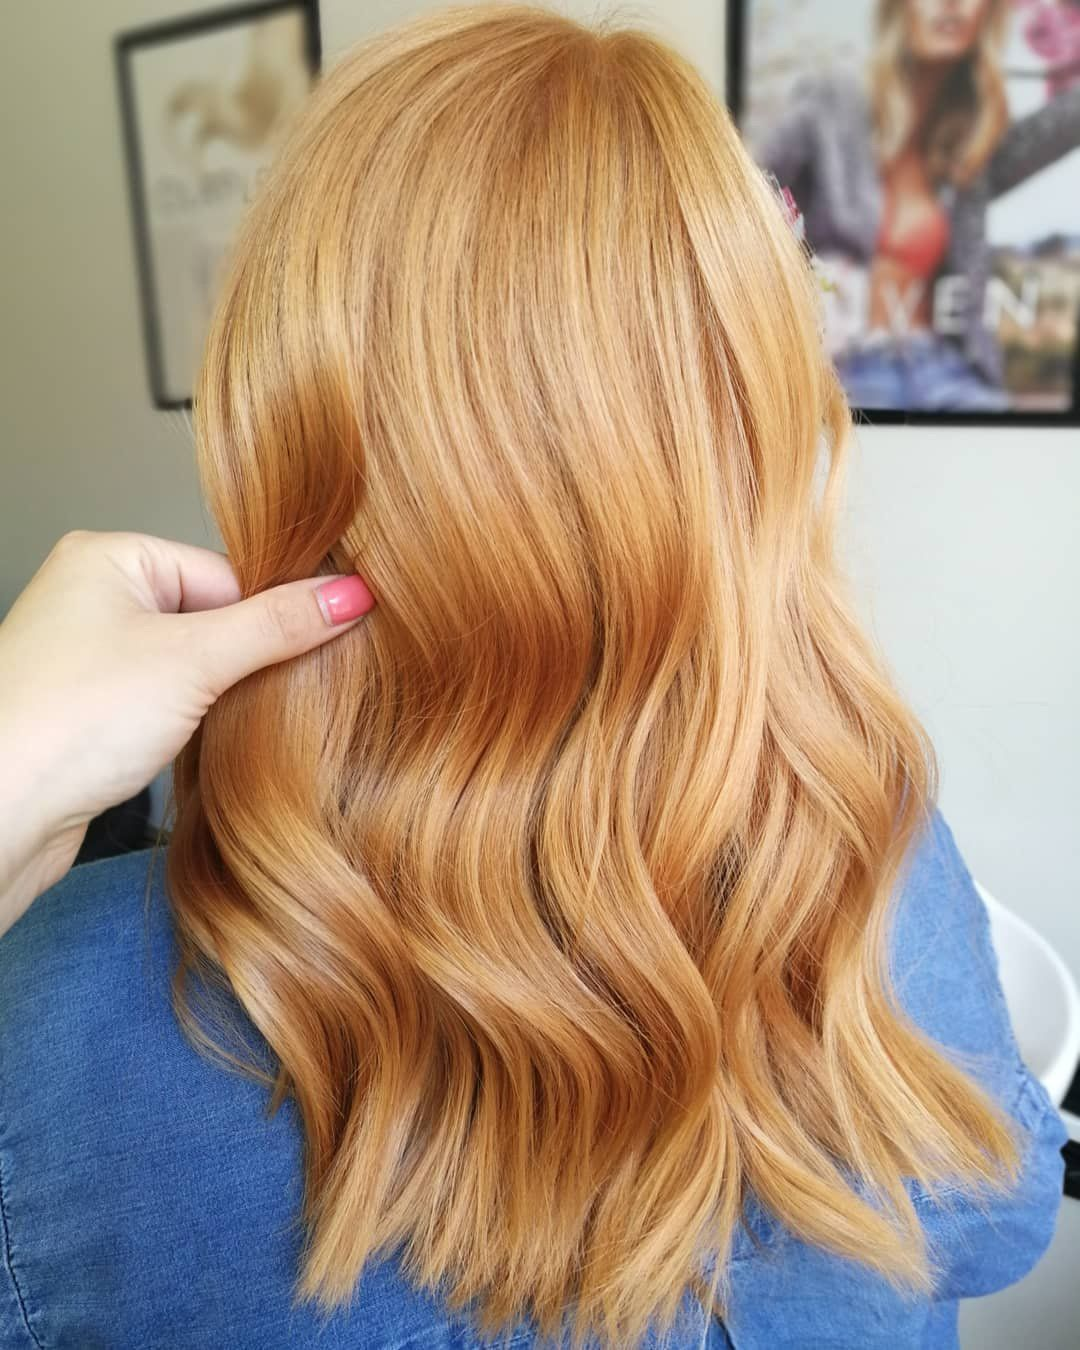 9 Fall Hair Color Trends For Blondes You Ll Be Seeing Everywhere Blonde Hair Color Ombre Hair Blonde Strawberry Blonde Hair